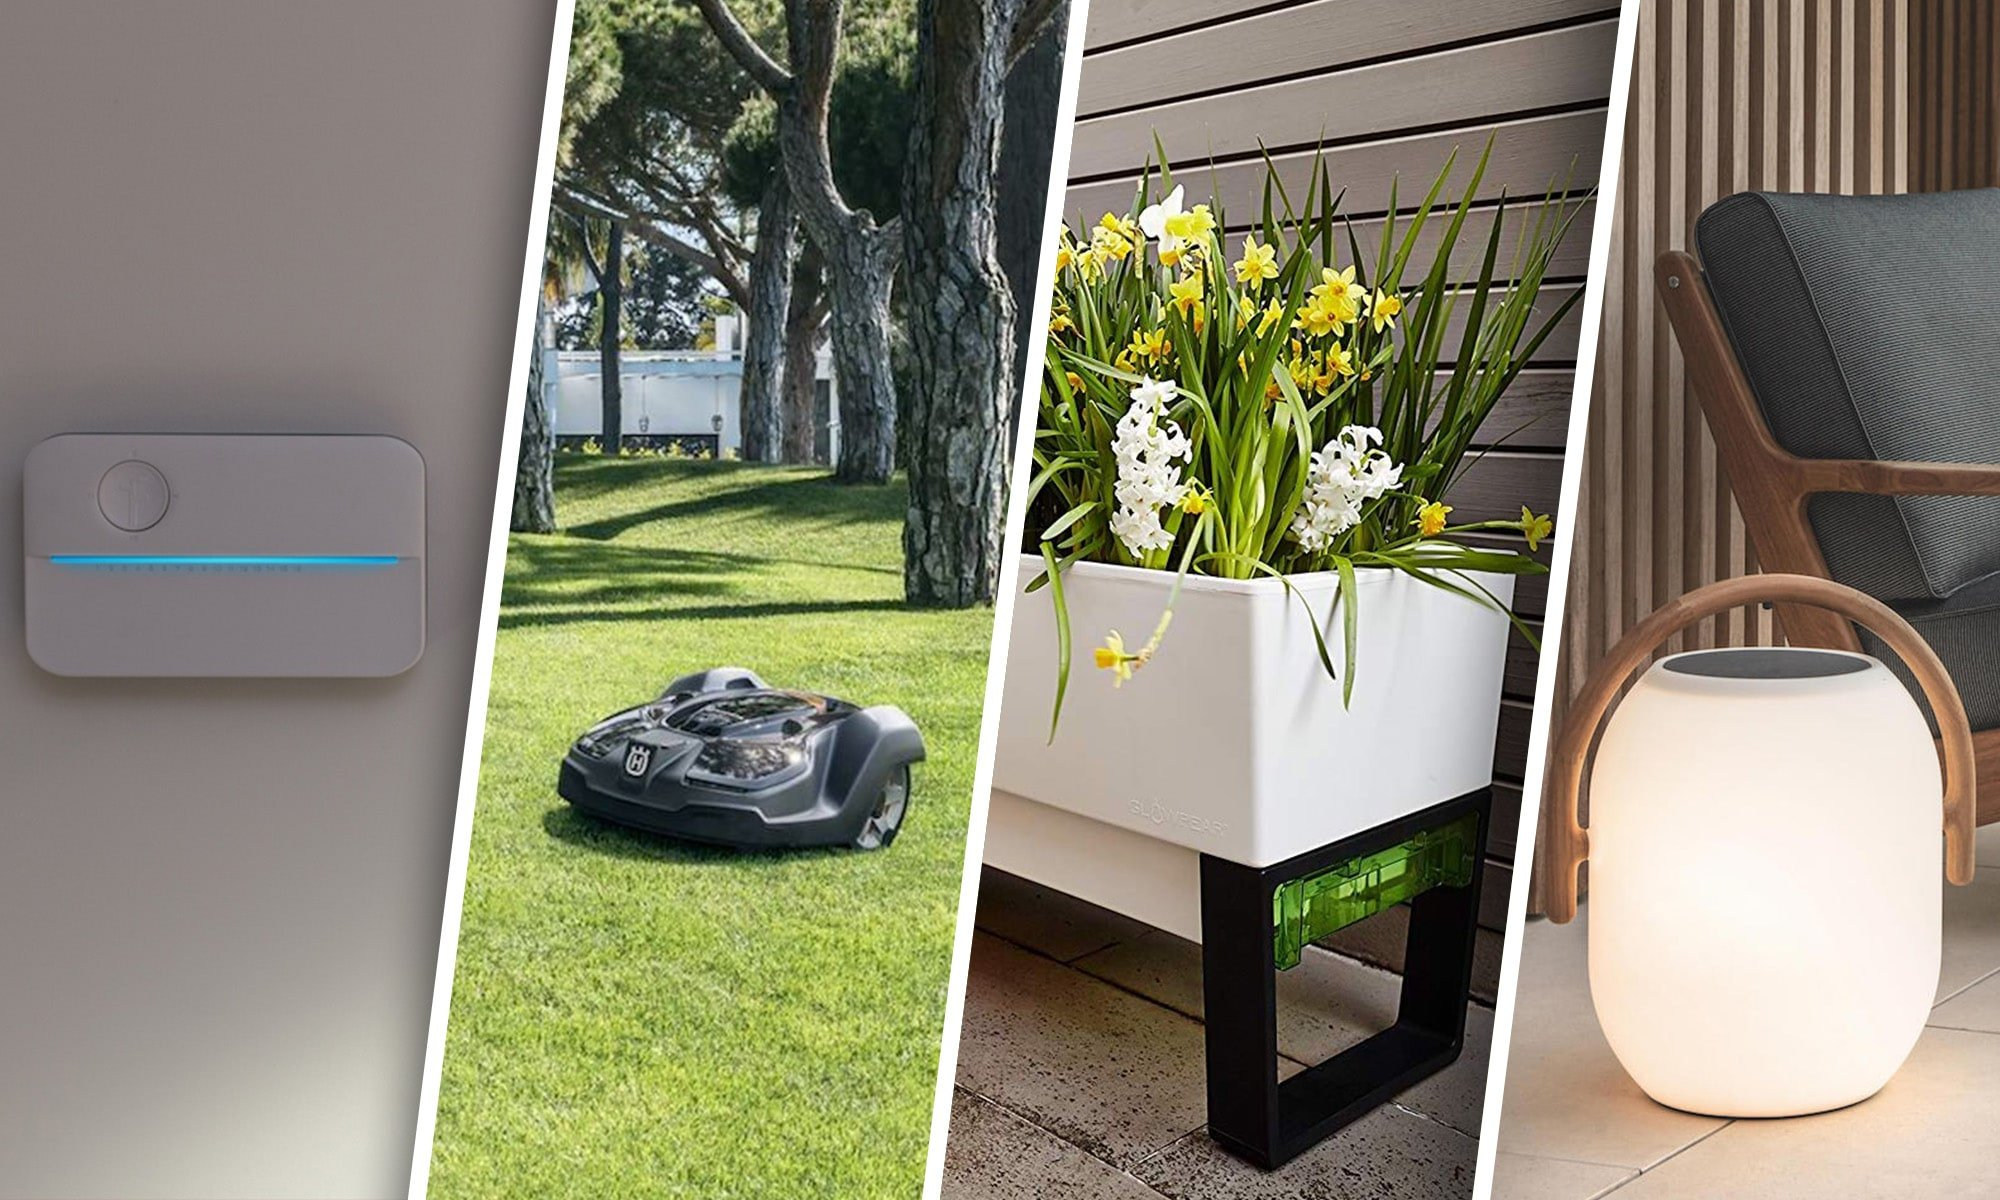 Smart garden gadgets that will make working in the backyard much more efficient - cover